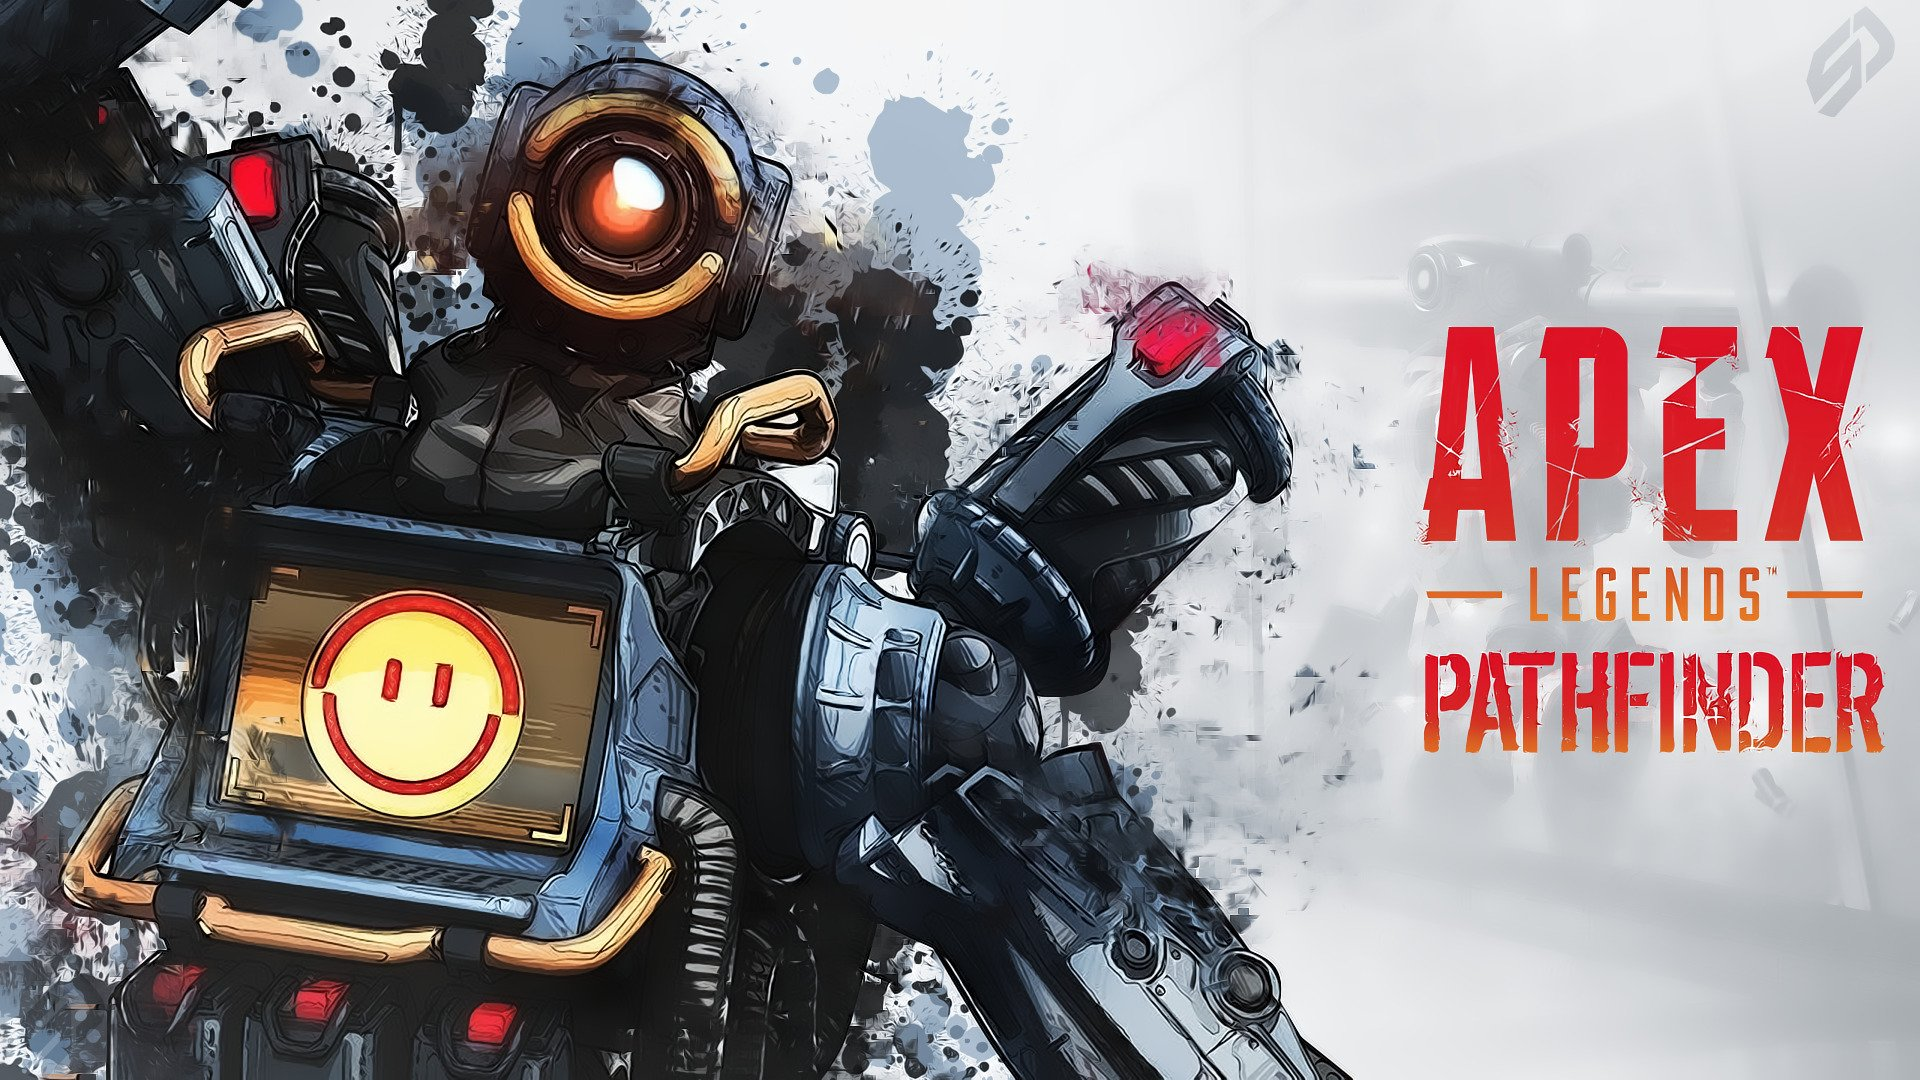 992036 - Apex Legends Pathfinder Hd - Apex wallpaper 4k 2019, Apex phone wallpaper hd 4k, Apex legends wallpaper phone, Apex legends wallpaper hd 4kwallpaper, apex legends characters wallpaper hd 4k, Apex legends background hd 4k wallpaper, Apex Legends 4k wallpaper